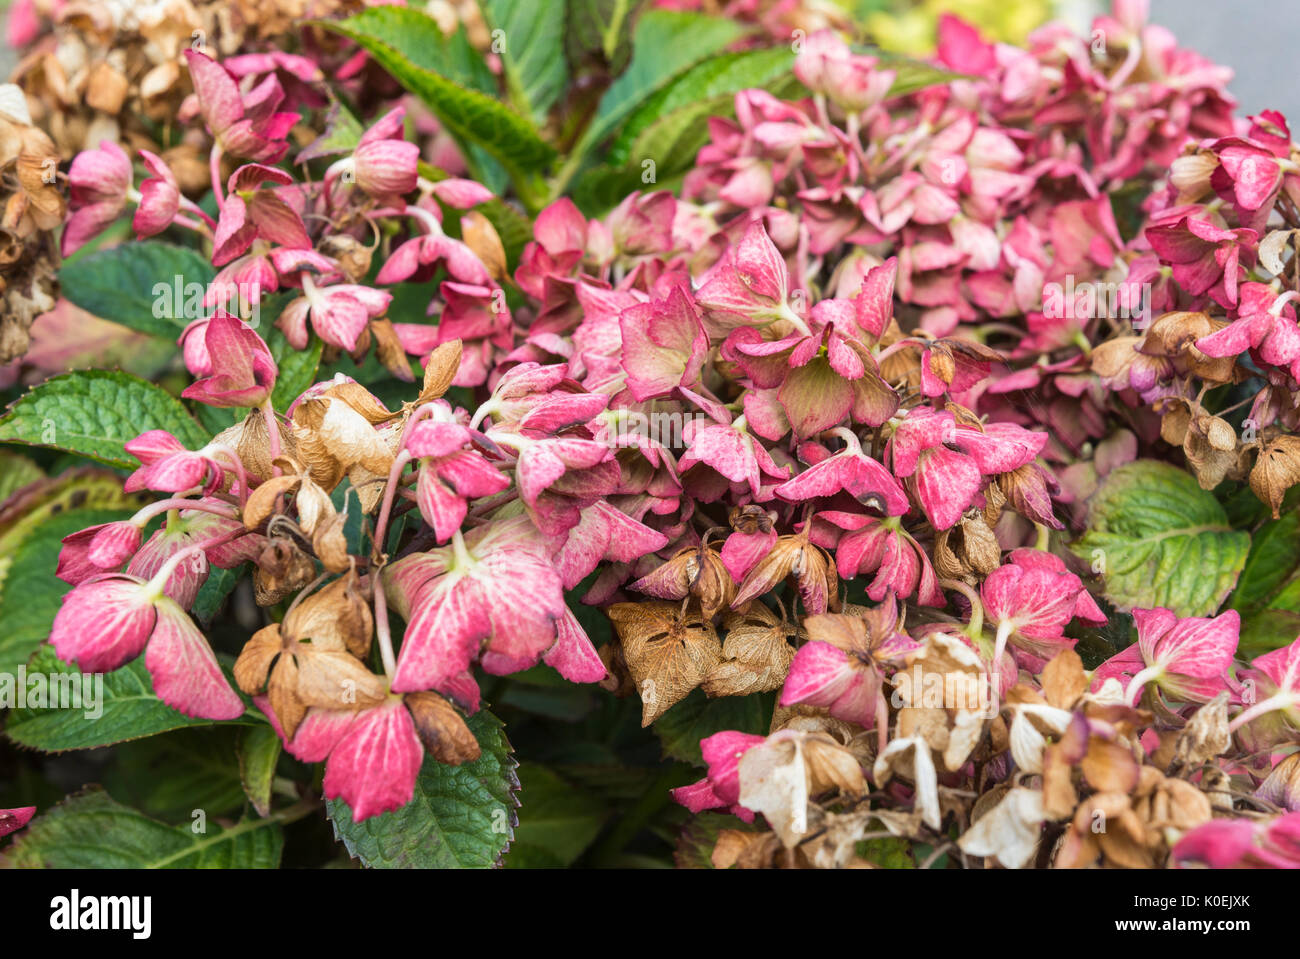 Dying flowers on a Hydrangea macrophylla 'Selma' (Dutch Ladies Series) Shrub near the end of Summer in West Sussex, England, UK. - Stock Image